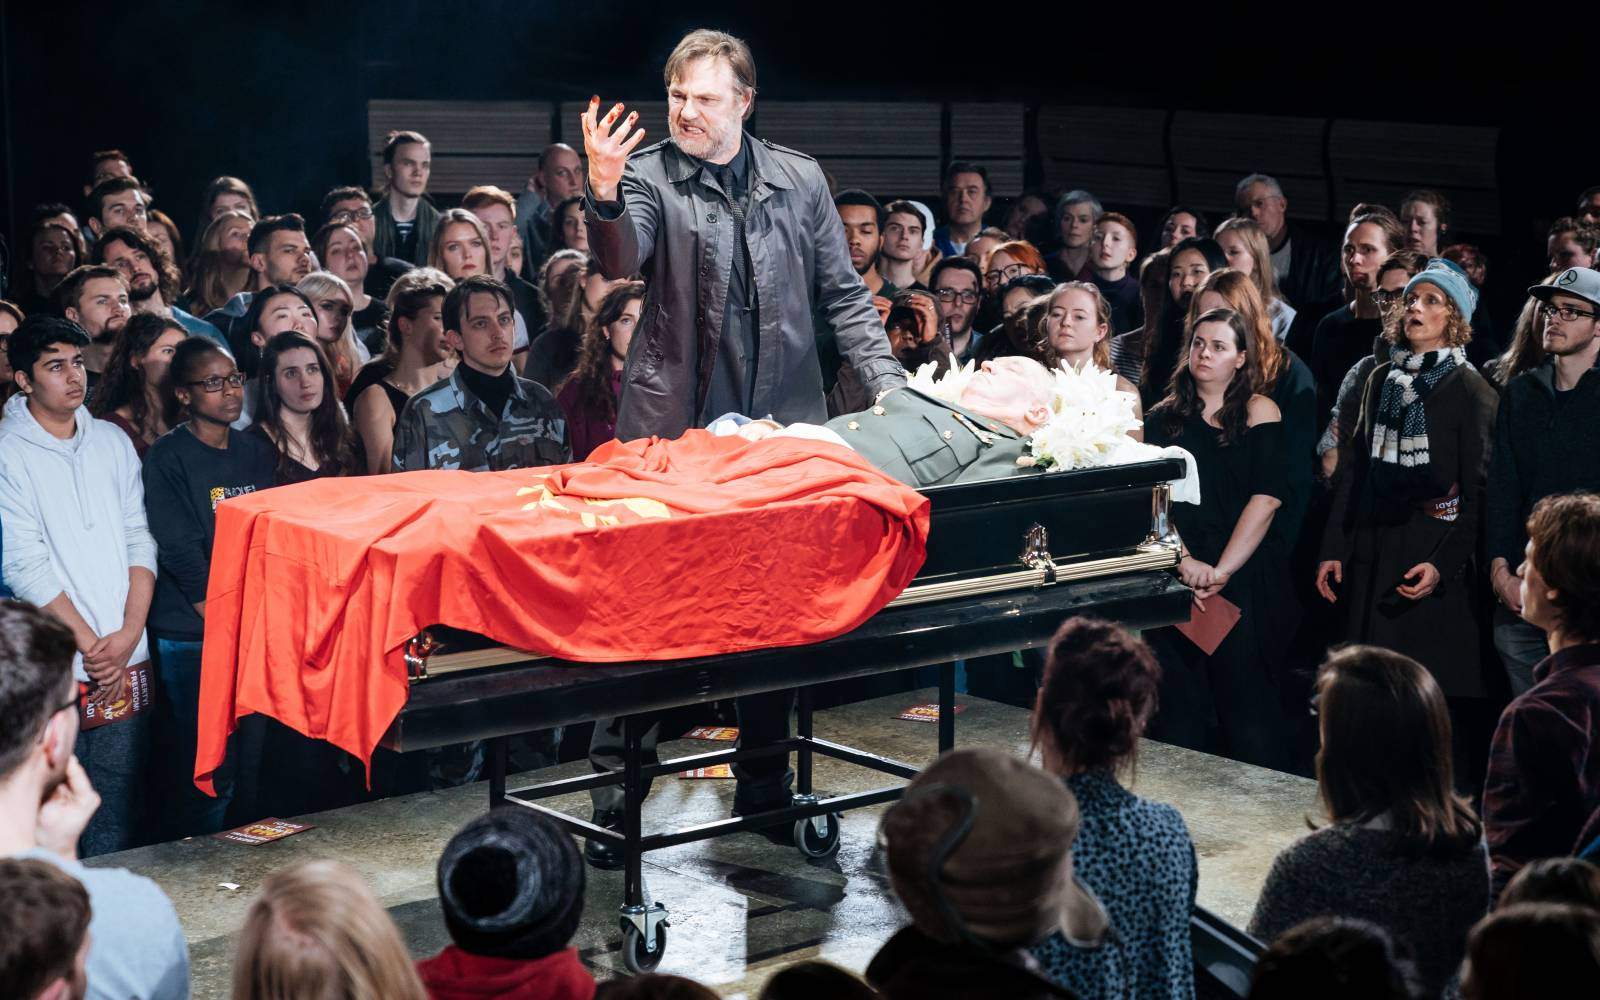 A man stares at his hand with fury. He stands over a body in a coffin, draped in a red flag, surrounded by a crowd